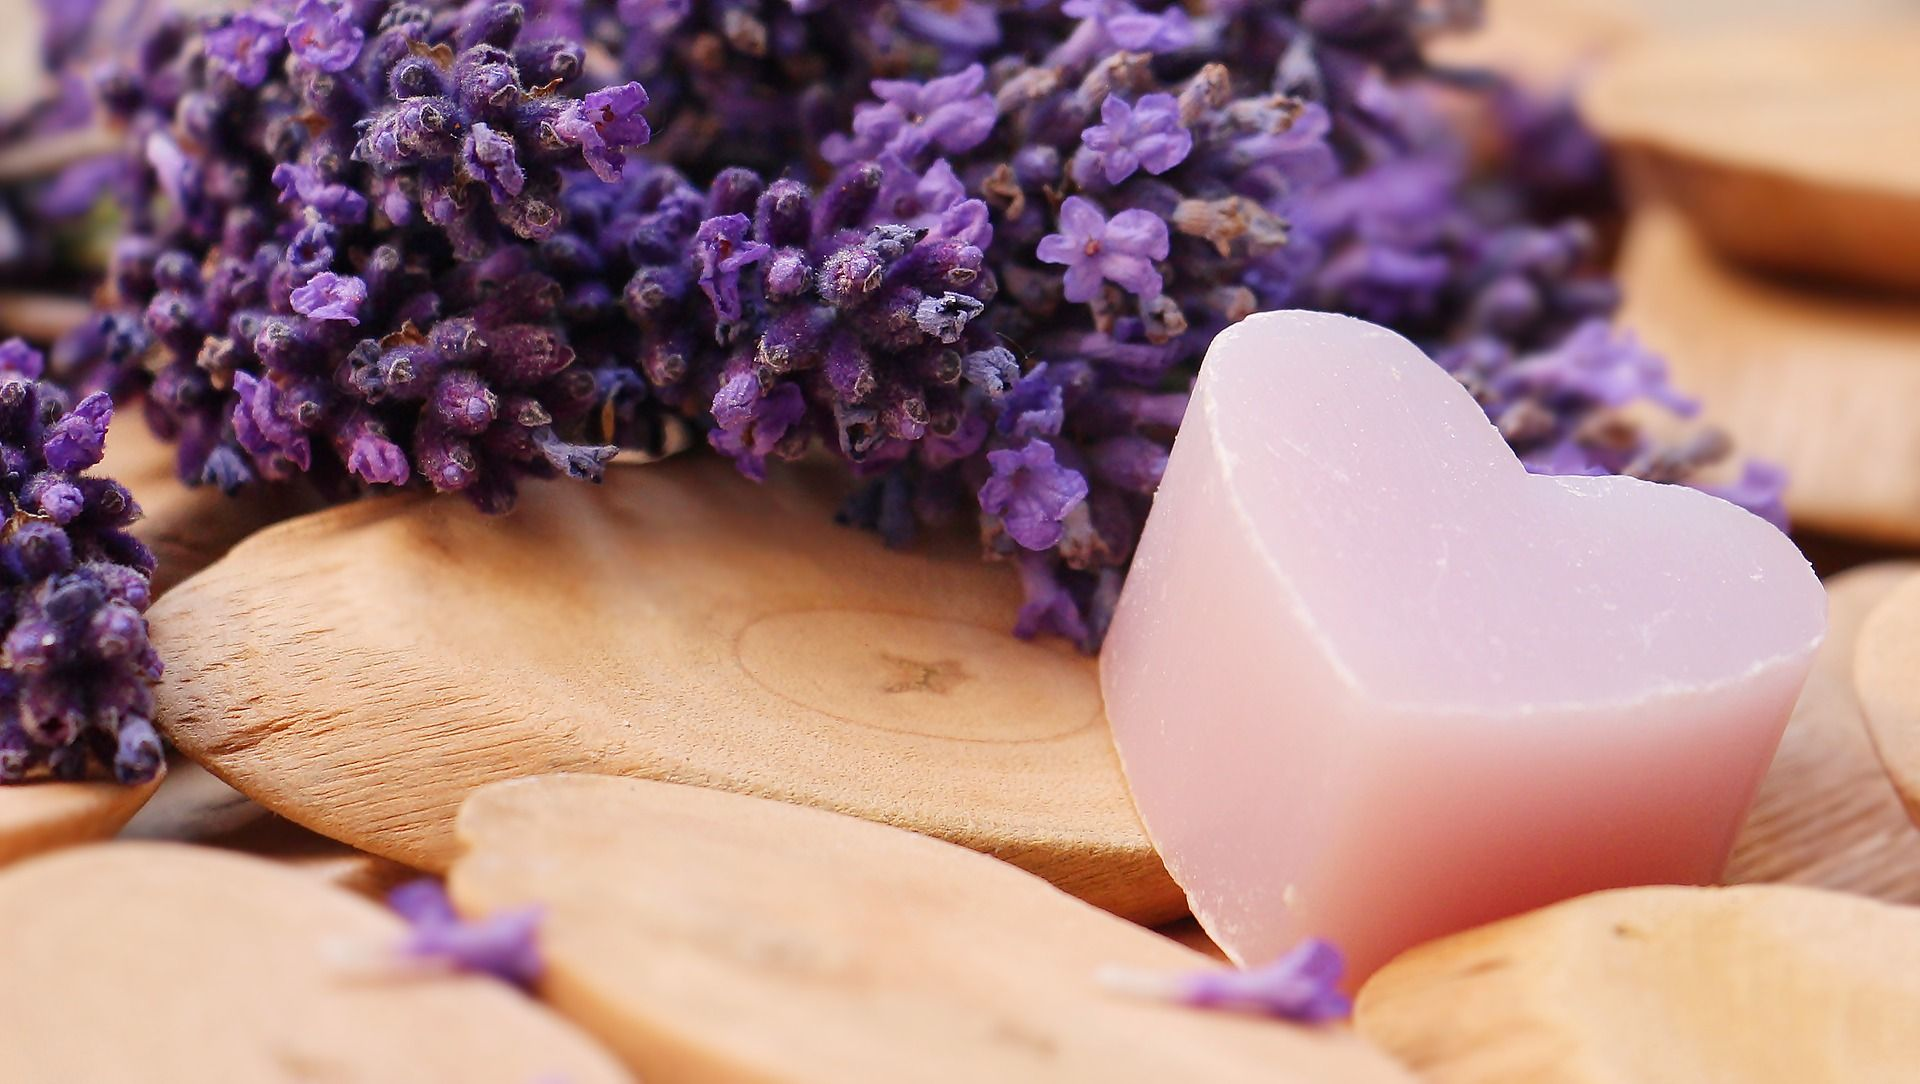 Kid Friendly Uses for Lavender Essential Oil